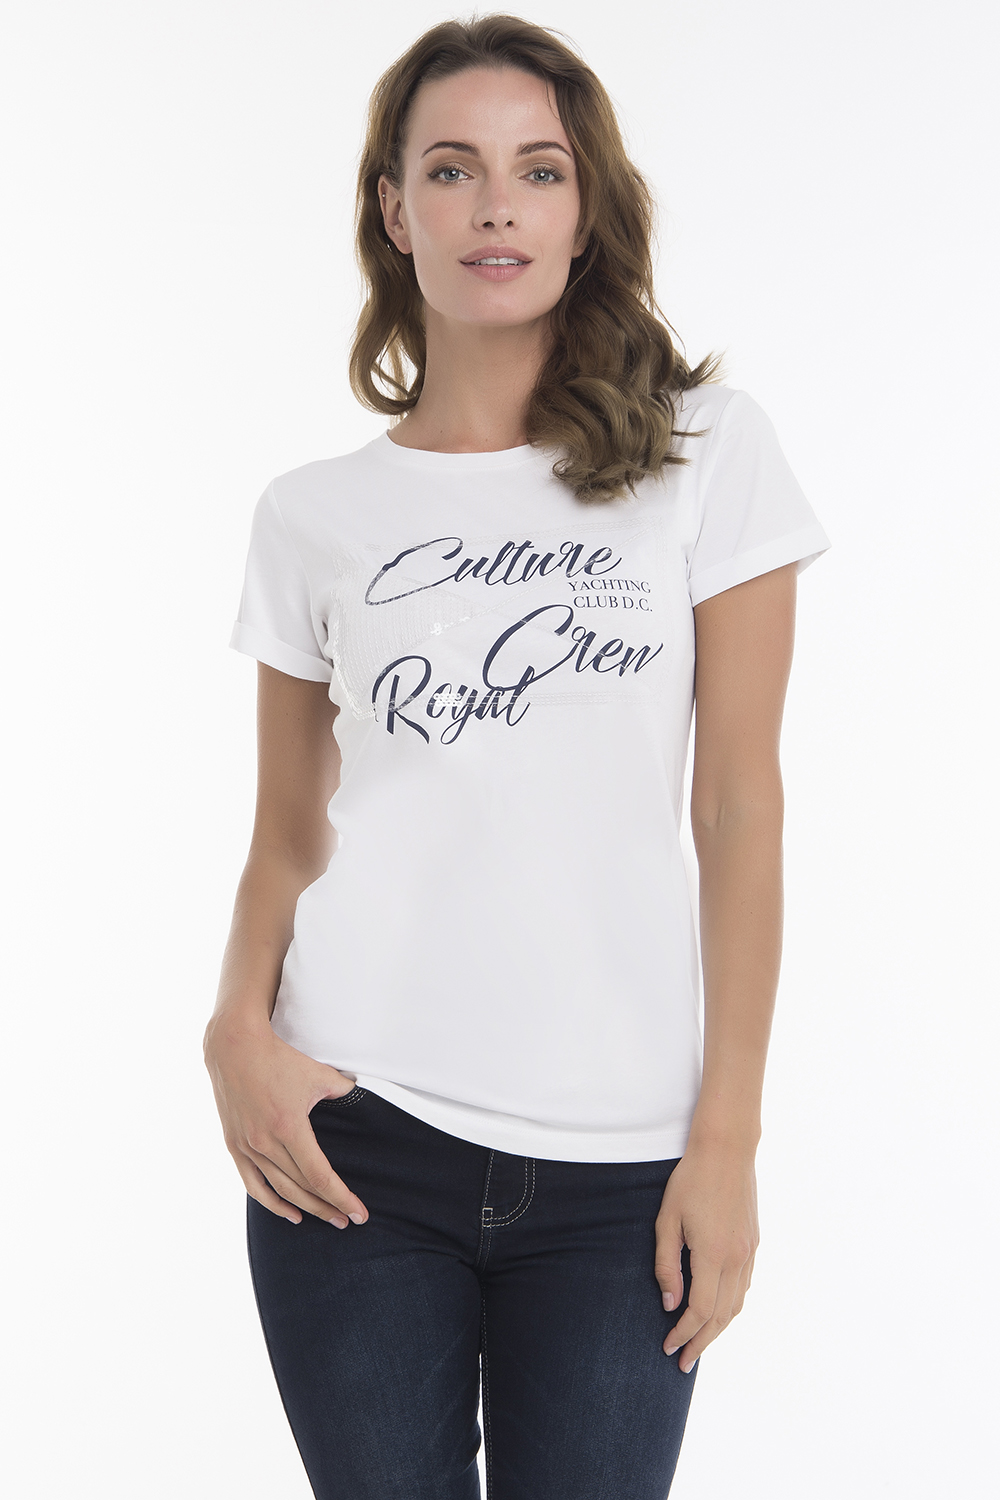 Women's T-Shirt Crew Neck White Cotton